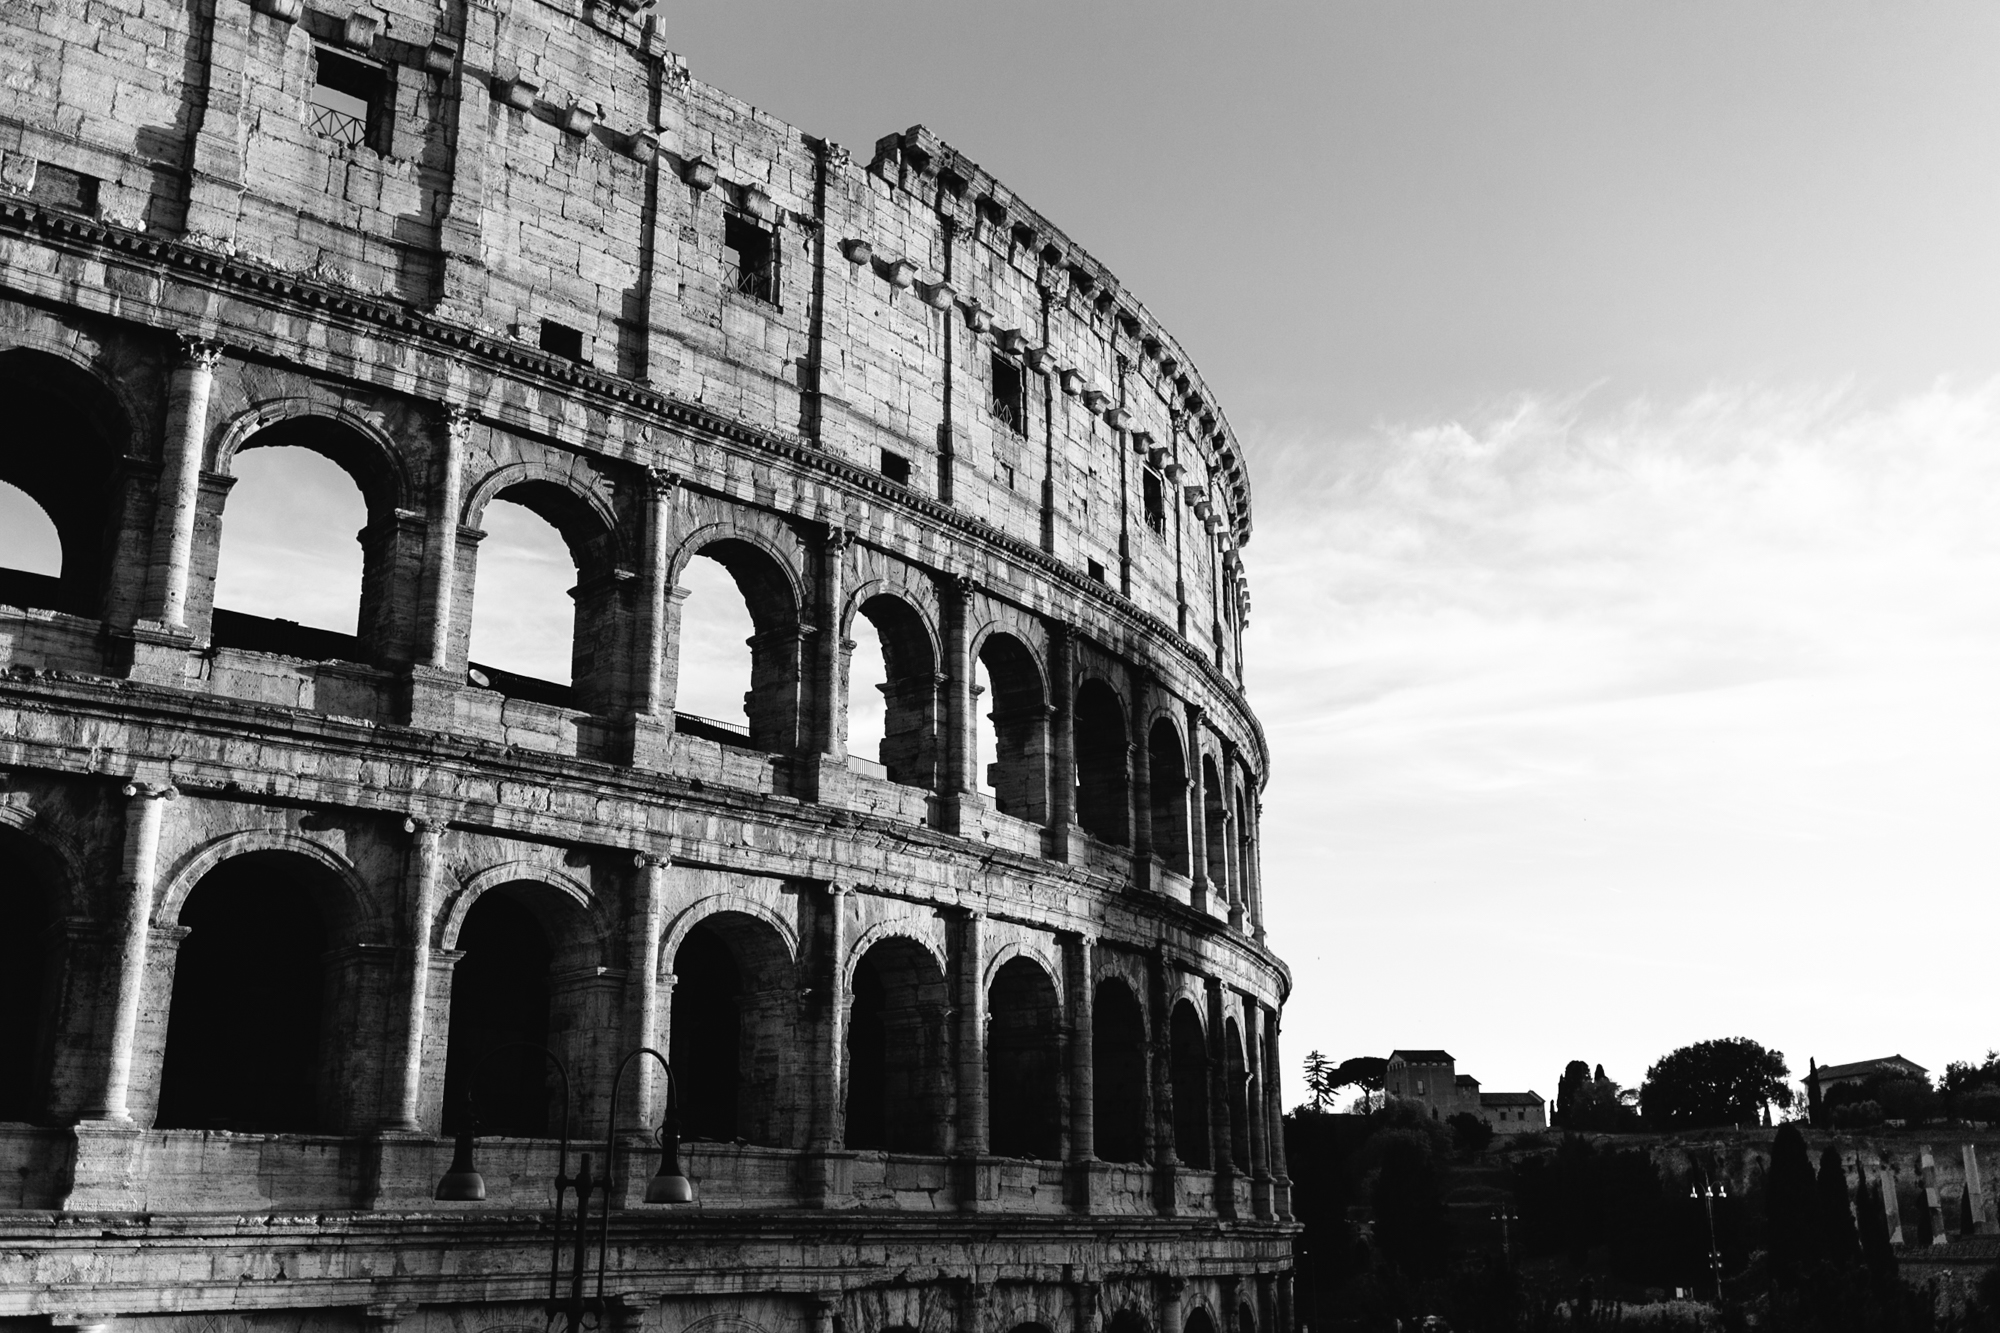 The sun sets on the Colisseum in Rome, Italy